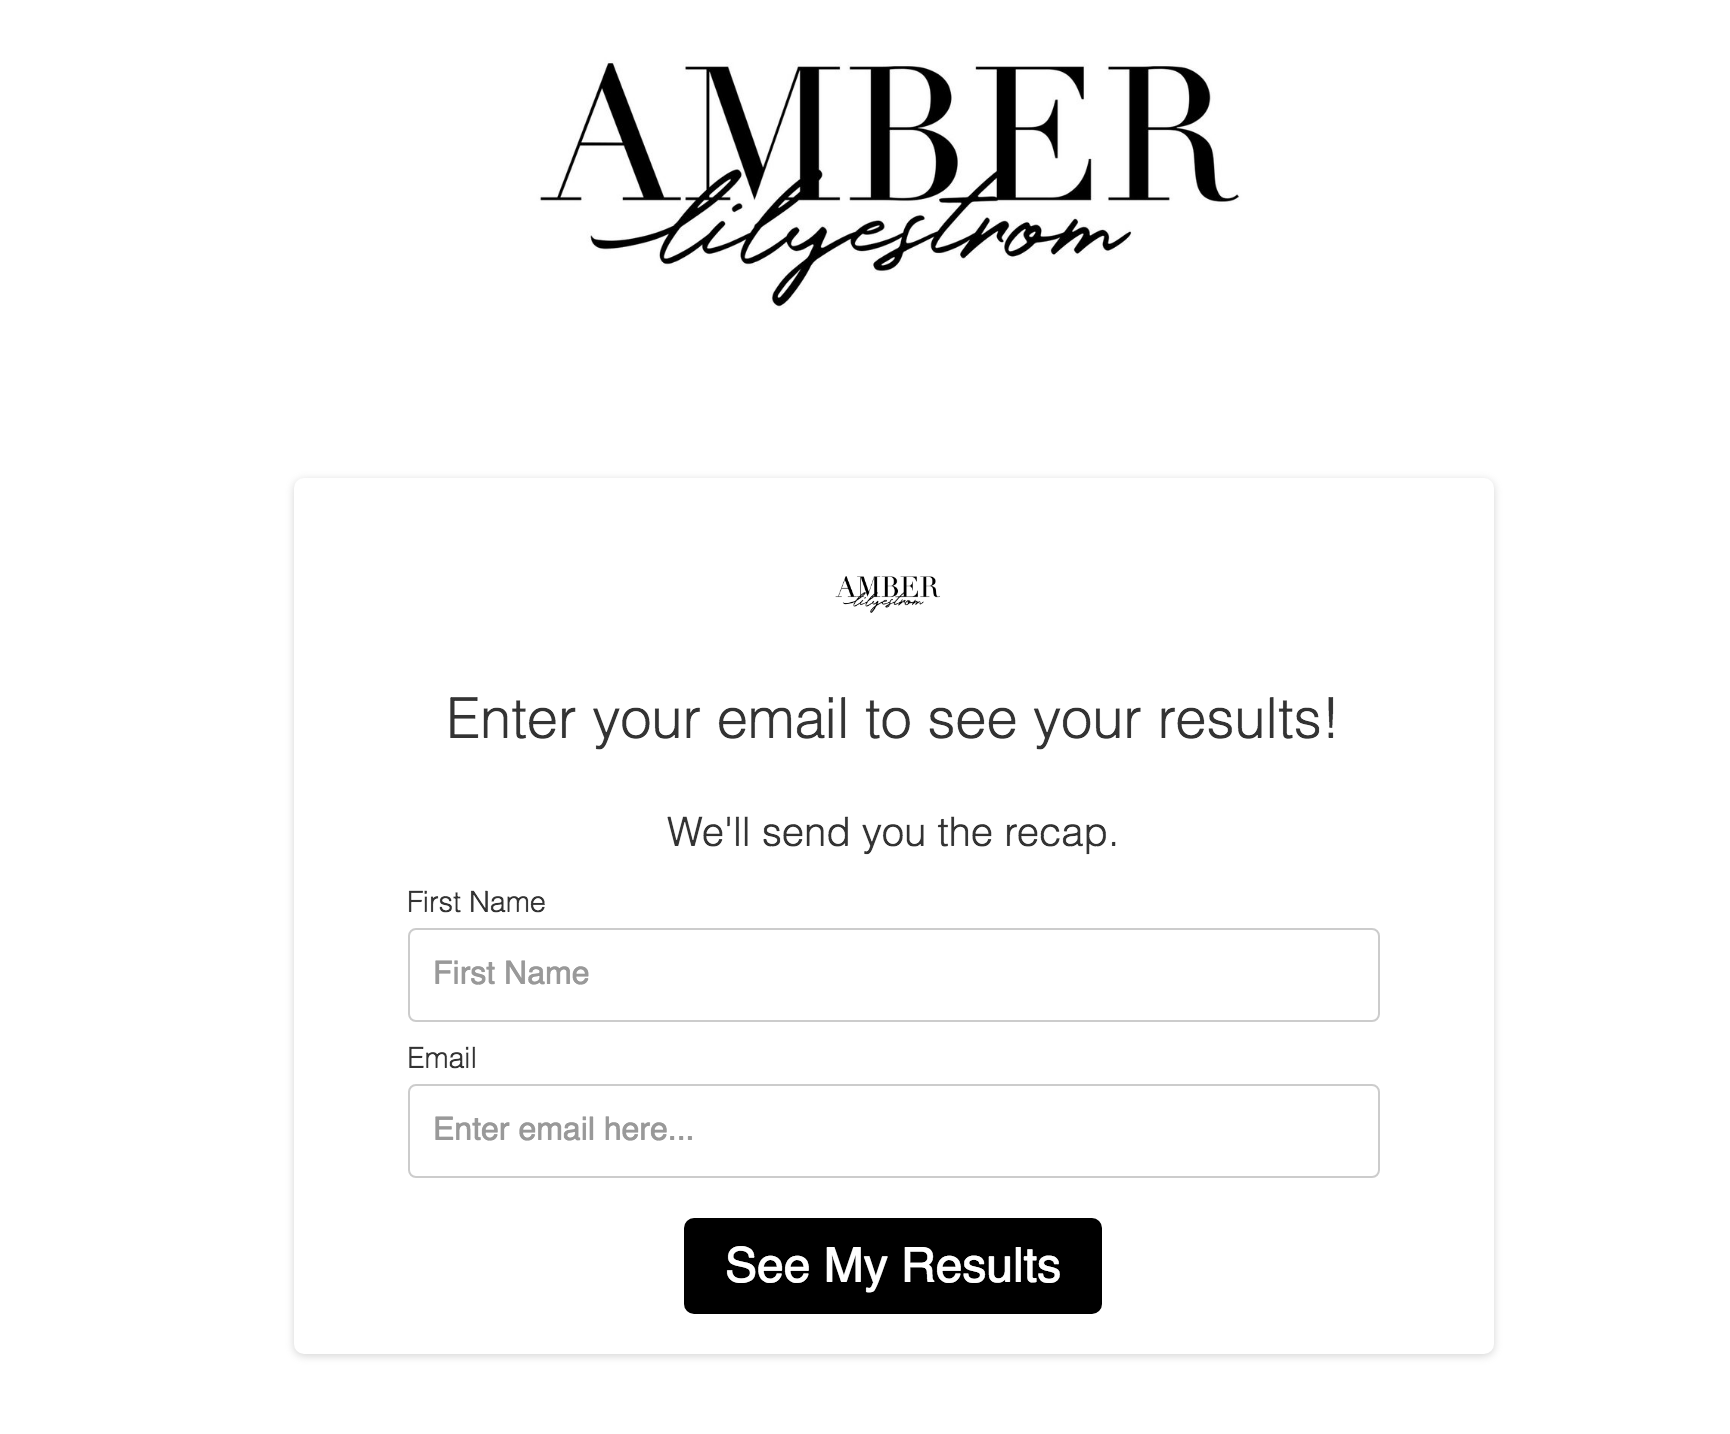 Amber Lilyestrom email optin form for quiz